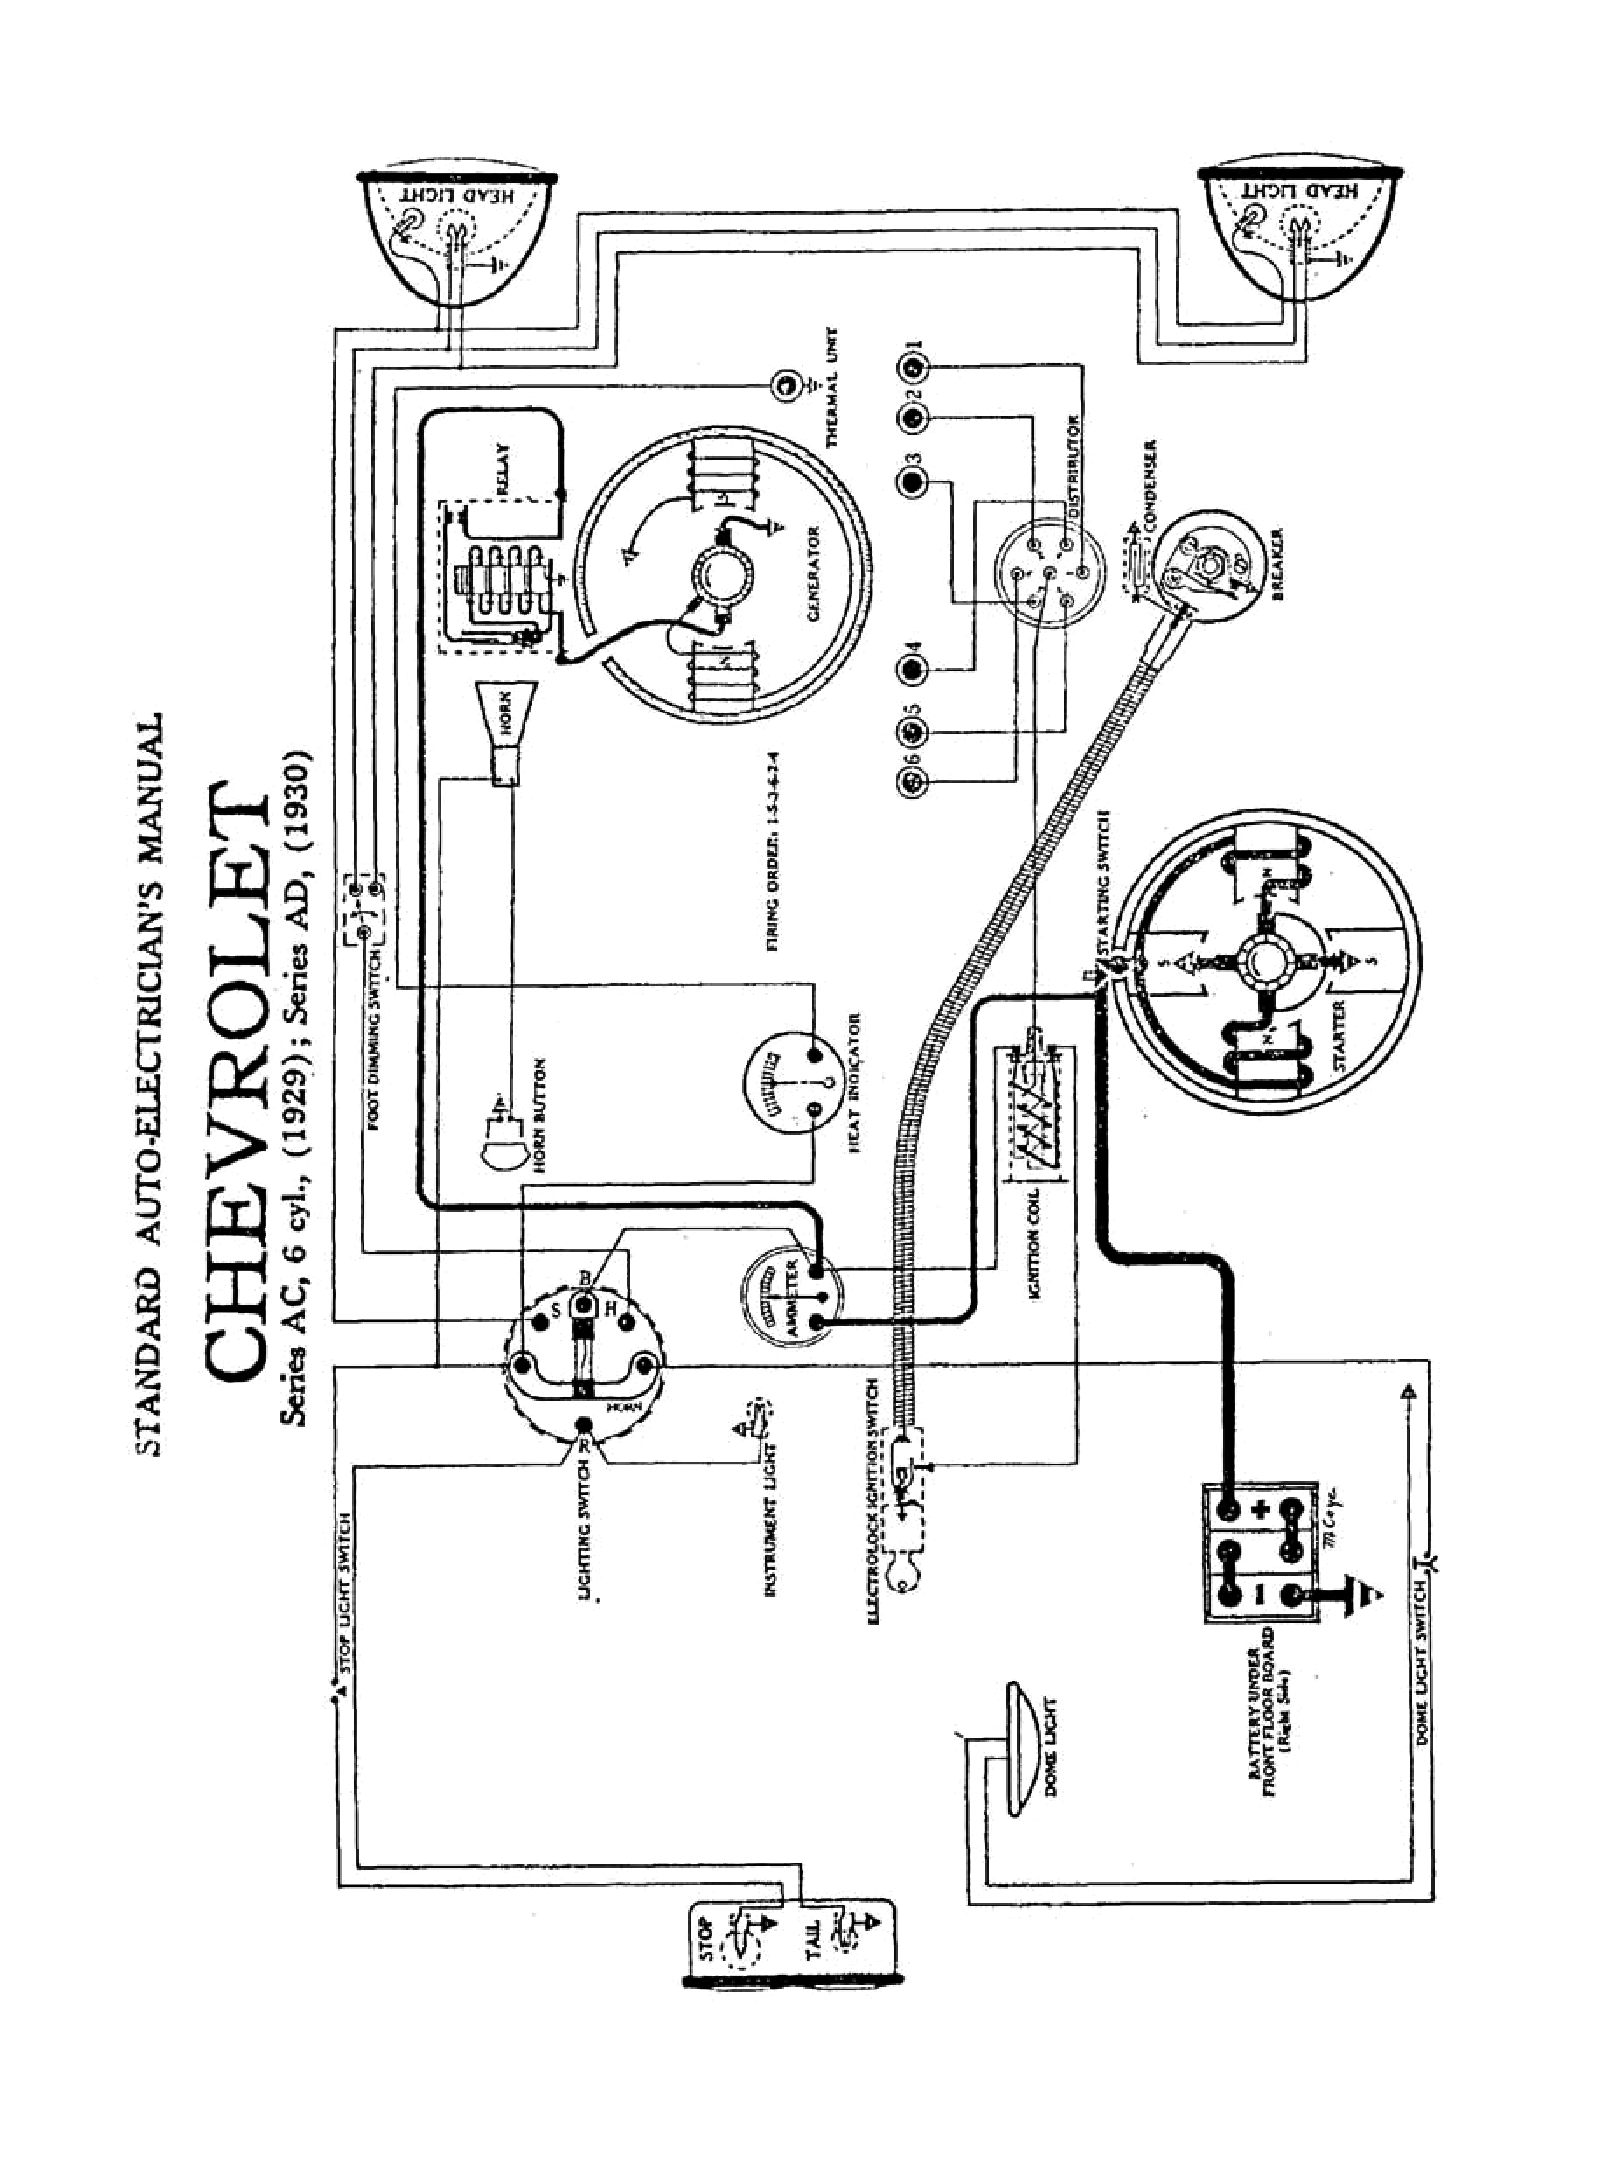 Chevy Impala Wiring Diagram Free Picture Wiring Diagram Schematic